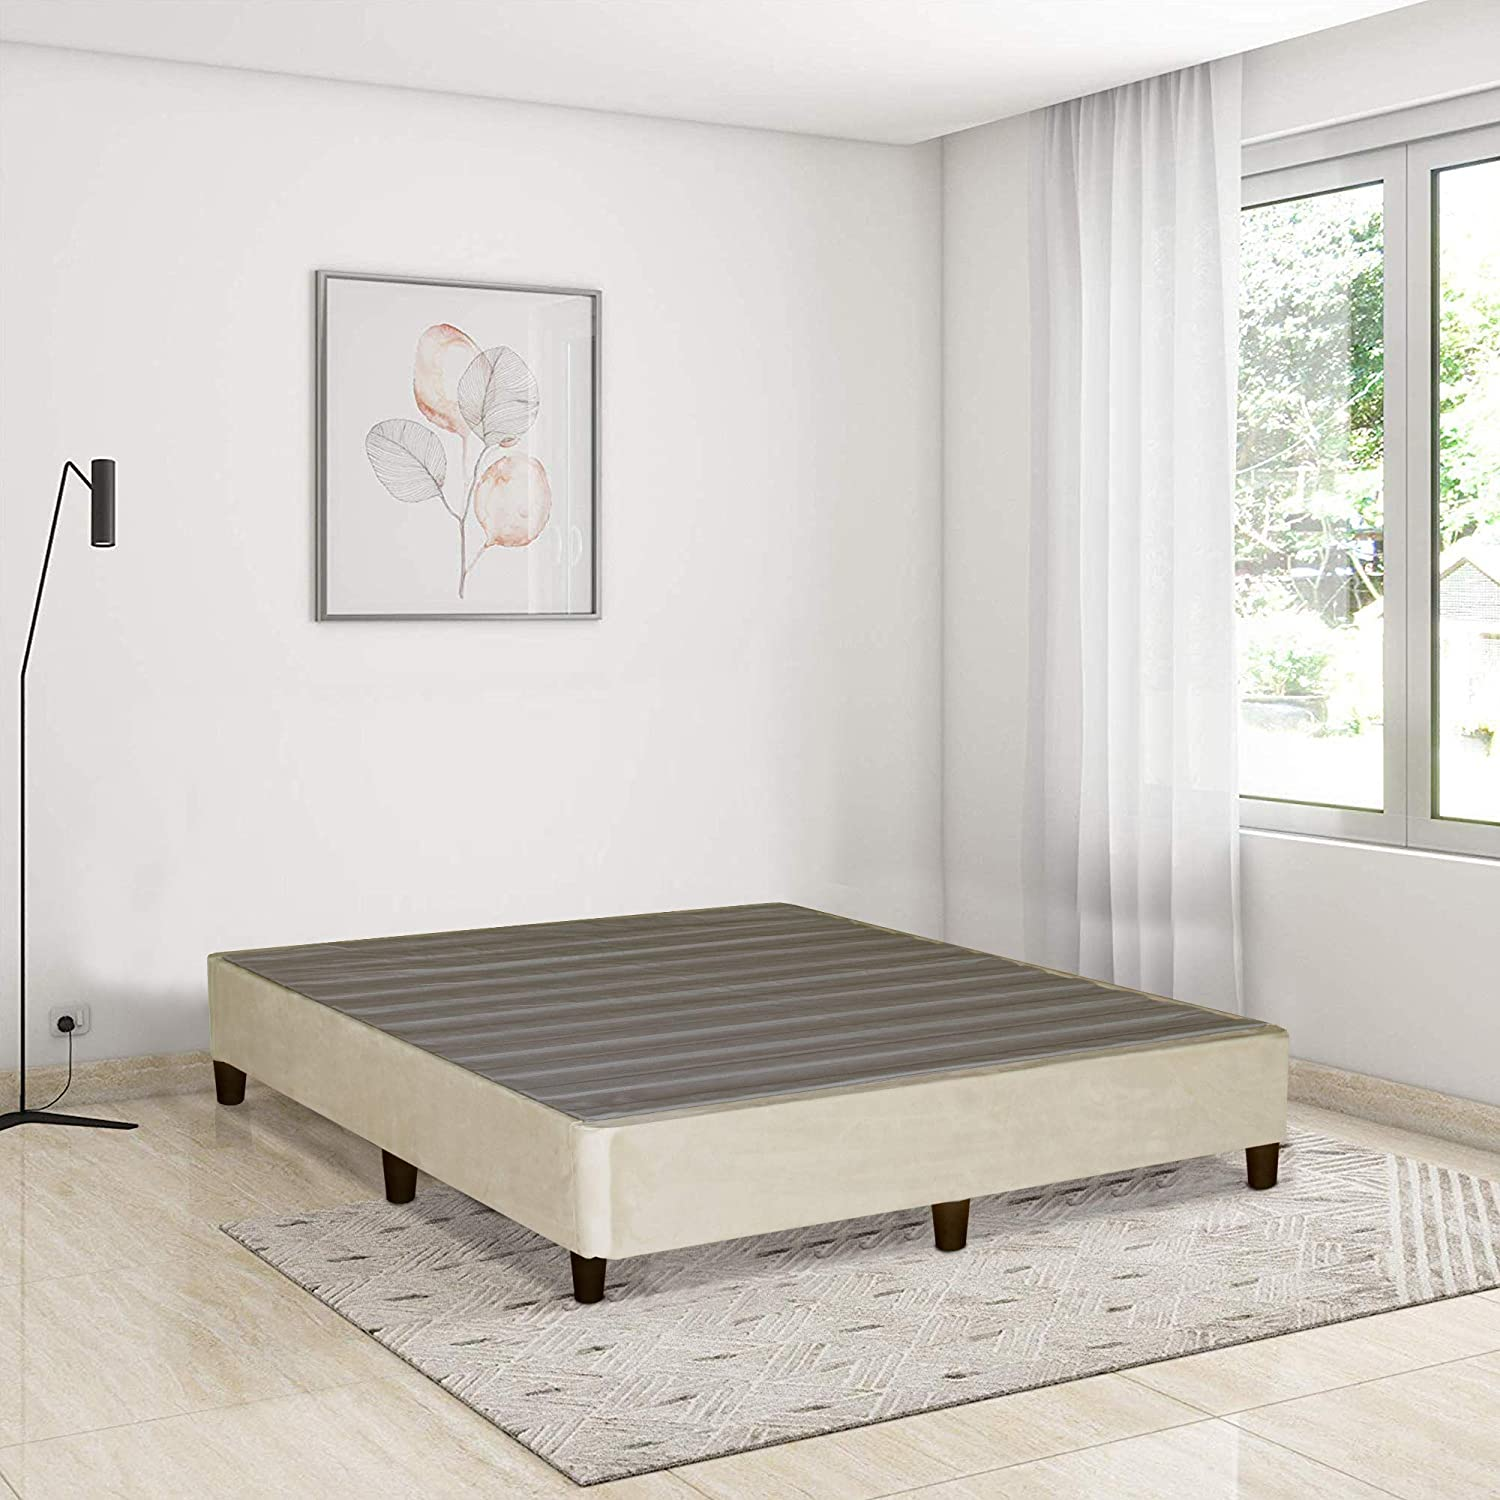 Mayton Platform Bed Large-scale sale For Mattress sping A Eliminate Need Box Price reduction